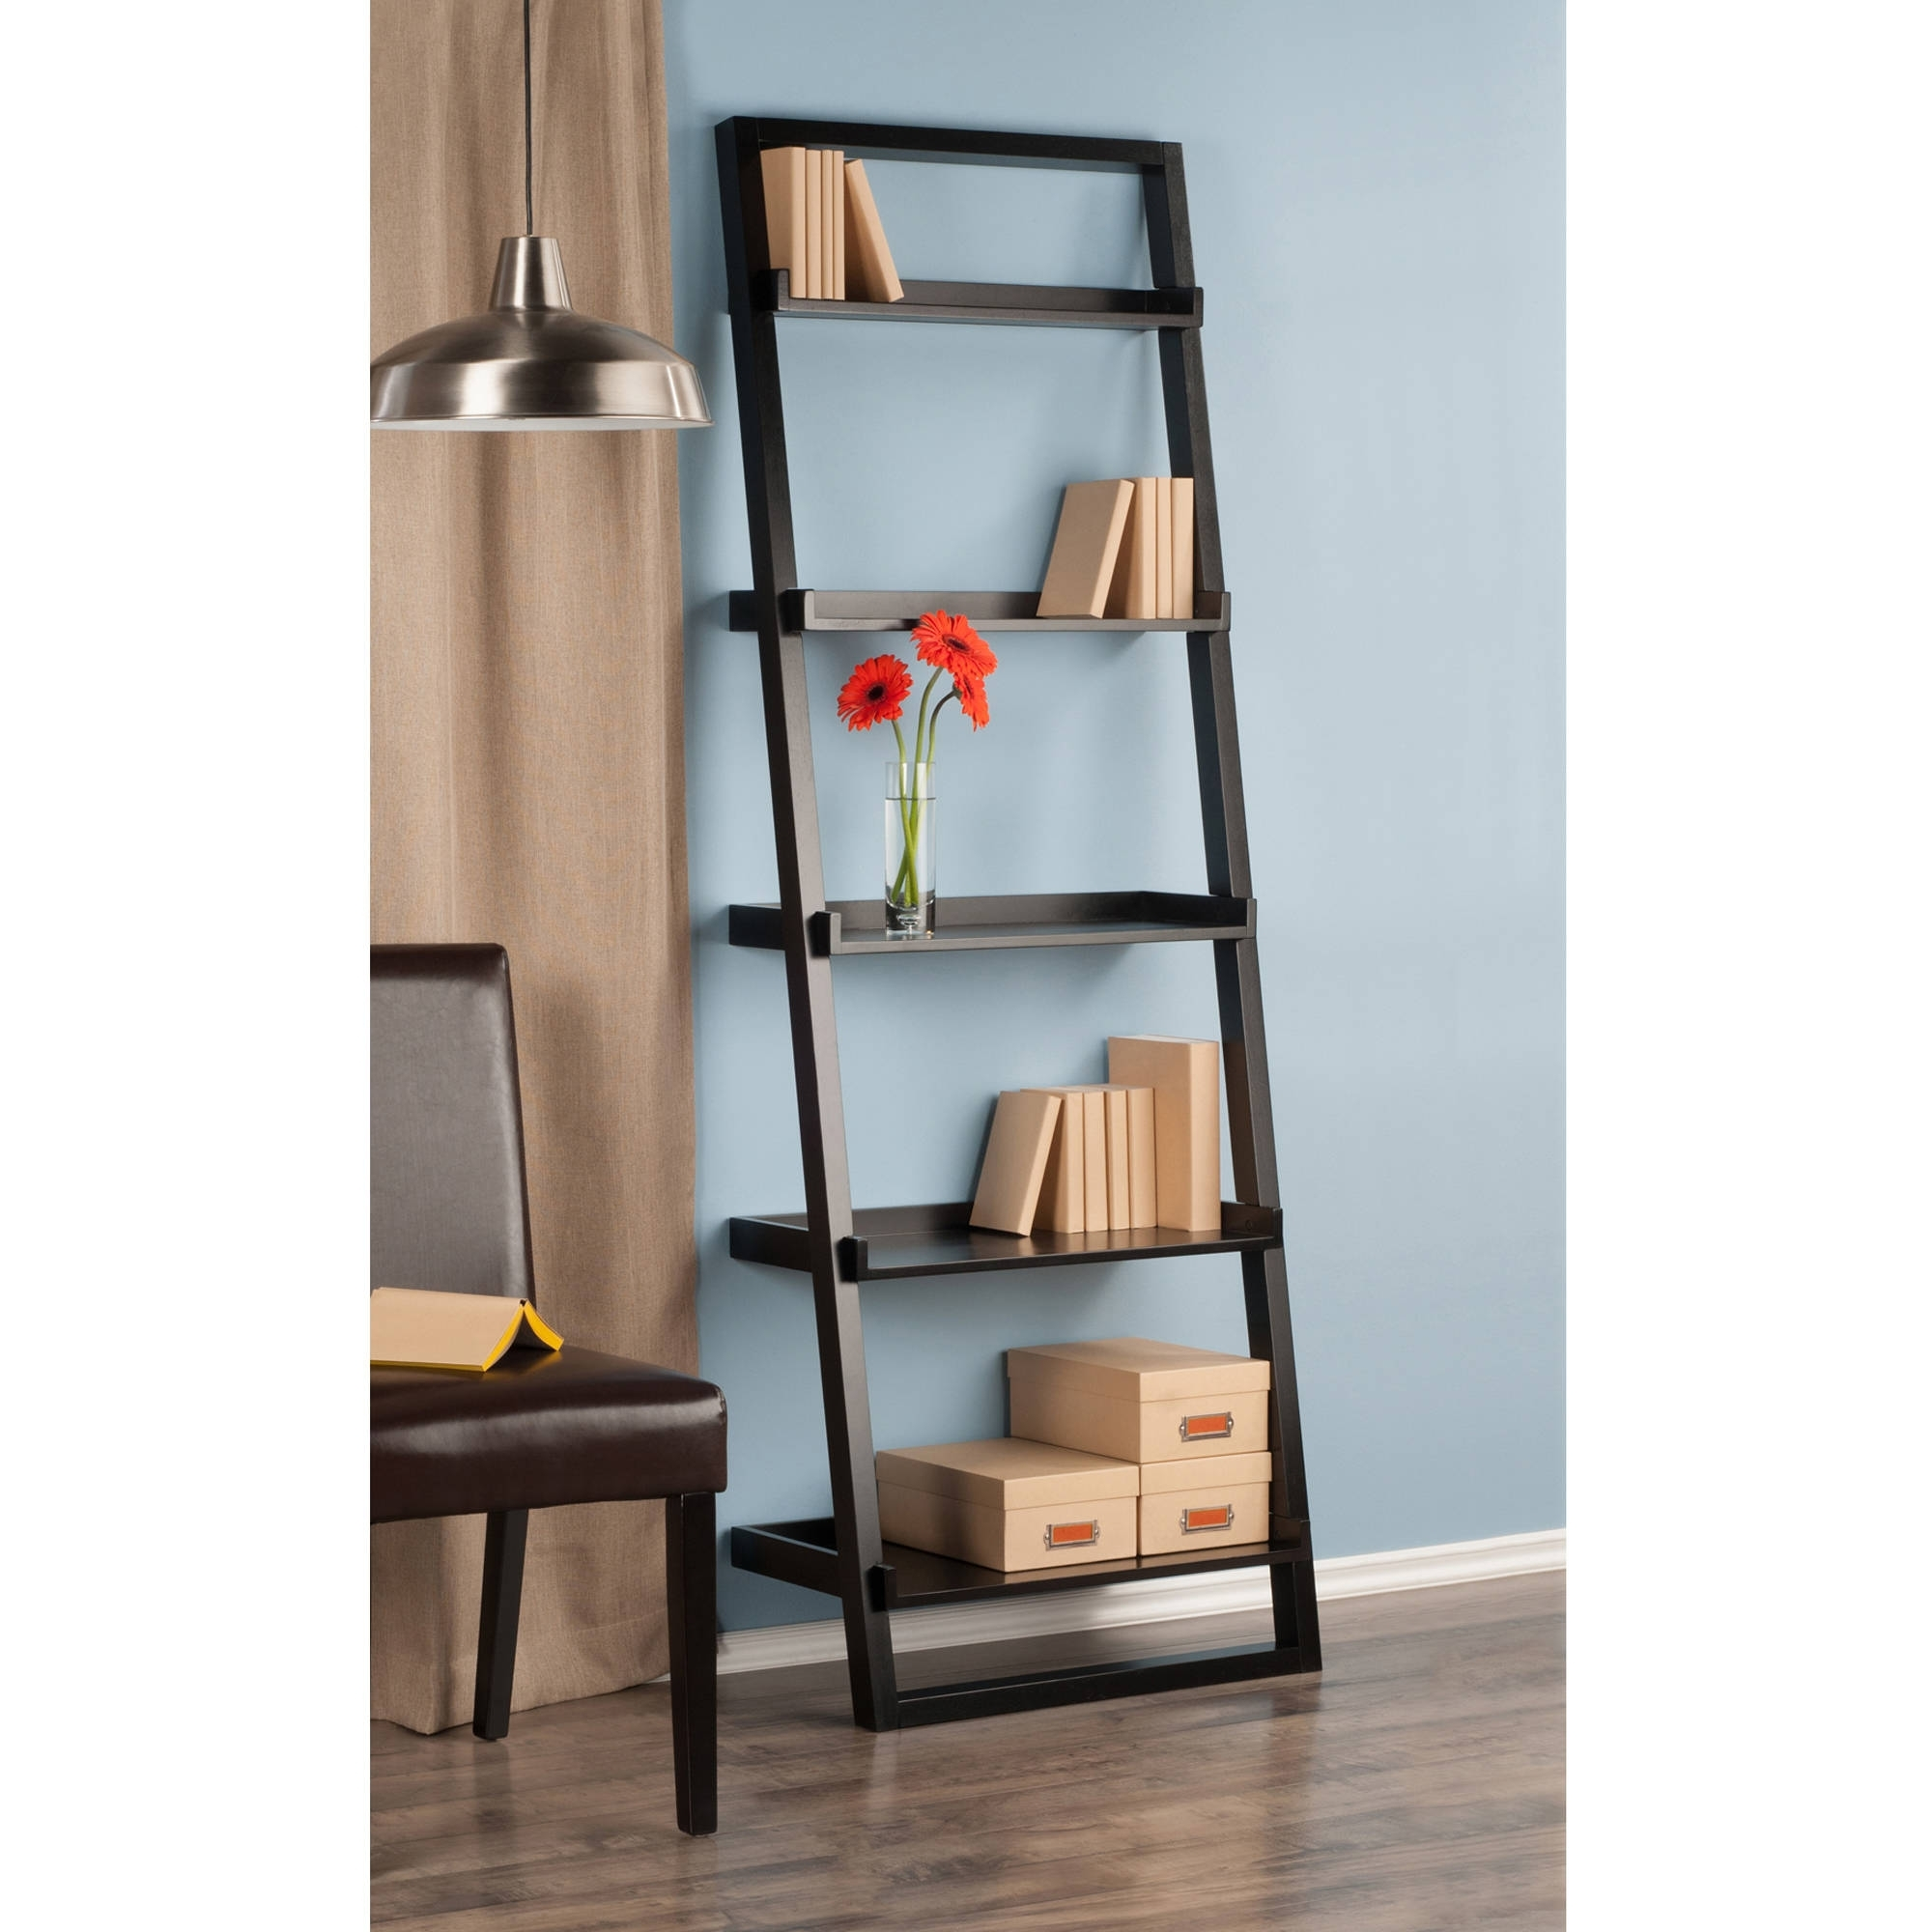 Crate And Barrel Leaning Bookcases Intended For Recent Leaning Wall 5 Shelf Bookcase, Black – Walmart (View 7 of 15)